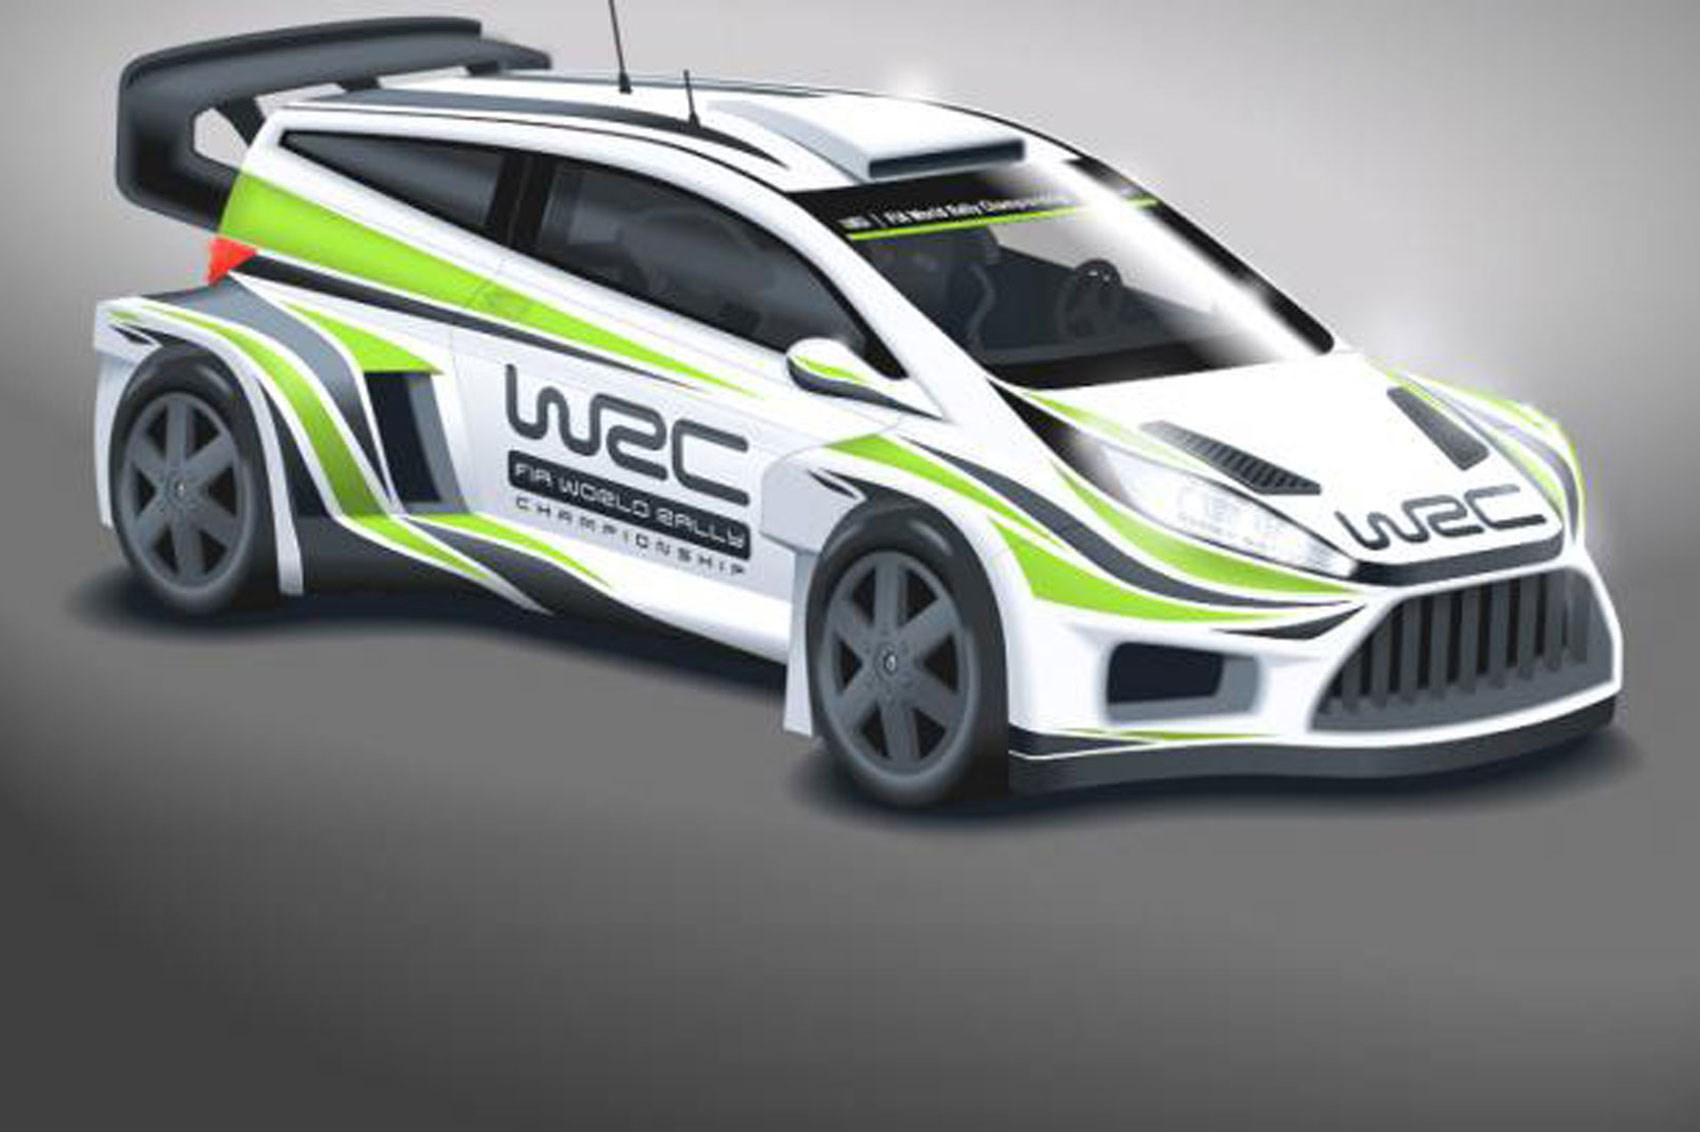 Ultrablogus  Pleasant Wild New Look For Wrc Cars In  By Car Magazine With Hot Wrc Cars Will Get Wider Bodies Bigger Wings And More Power For  With Easy On The Eye Bmw Interior Styling Also Volvo Interior Colors In Addition Cool Car Interior Gadgets And New Camry Interior As Well As Car Interior Floor Carpet Additionally Car Interior Decals From Carmagazinecouk With Ultrablogus  Hot Wild New Look For Wrc Cars In  By Car Magazine With Easy On The Eye Wrc Cars Will Get Wider Bodies Bigger Wings And More Power For  And Pleasant Bmw Interior Styling Also Volvo Interior Colors In Addition Cool Car Interior Gadgets From Carmagazinecouk